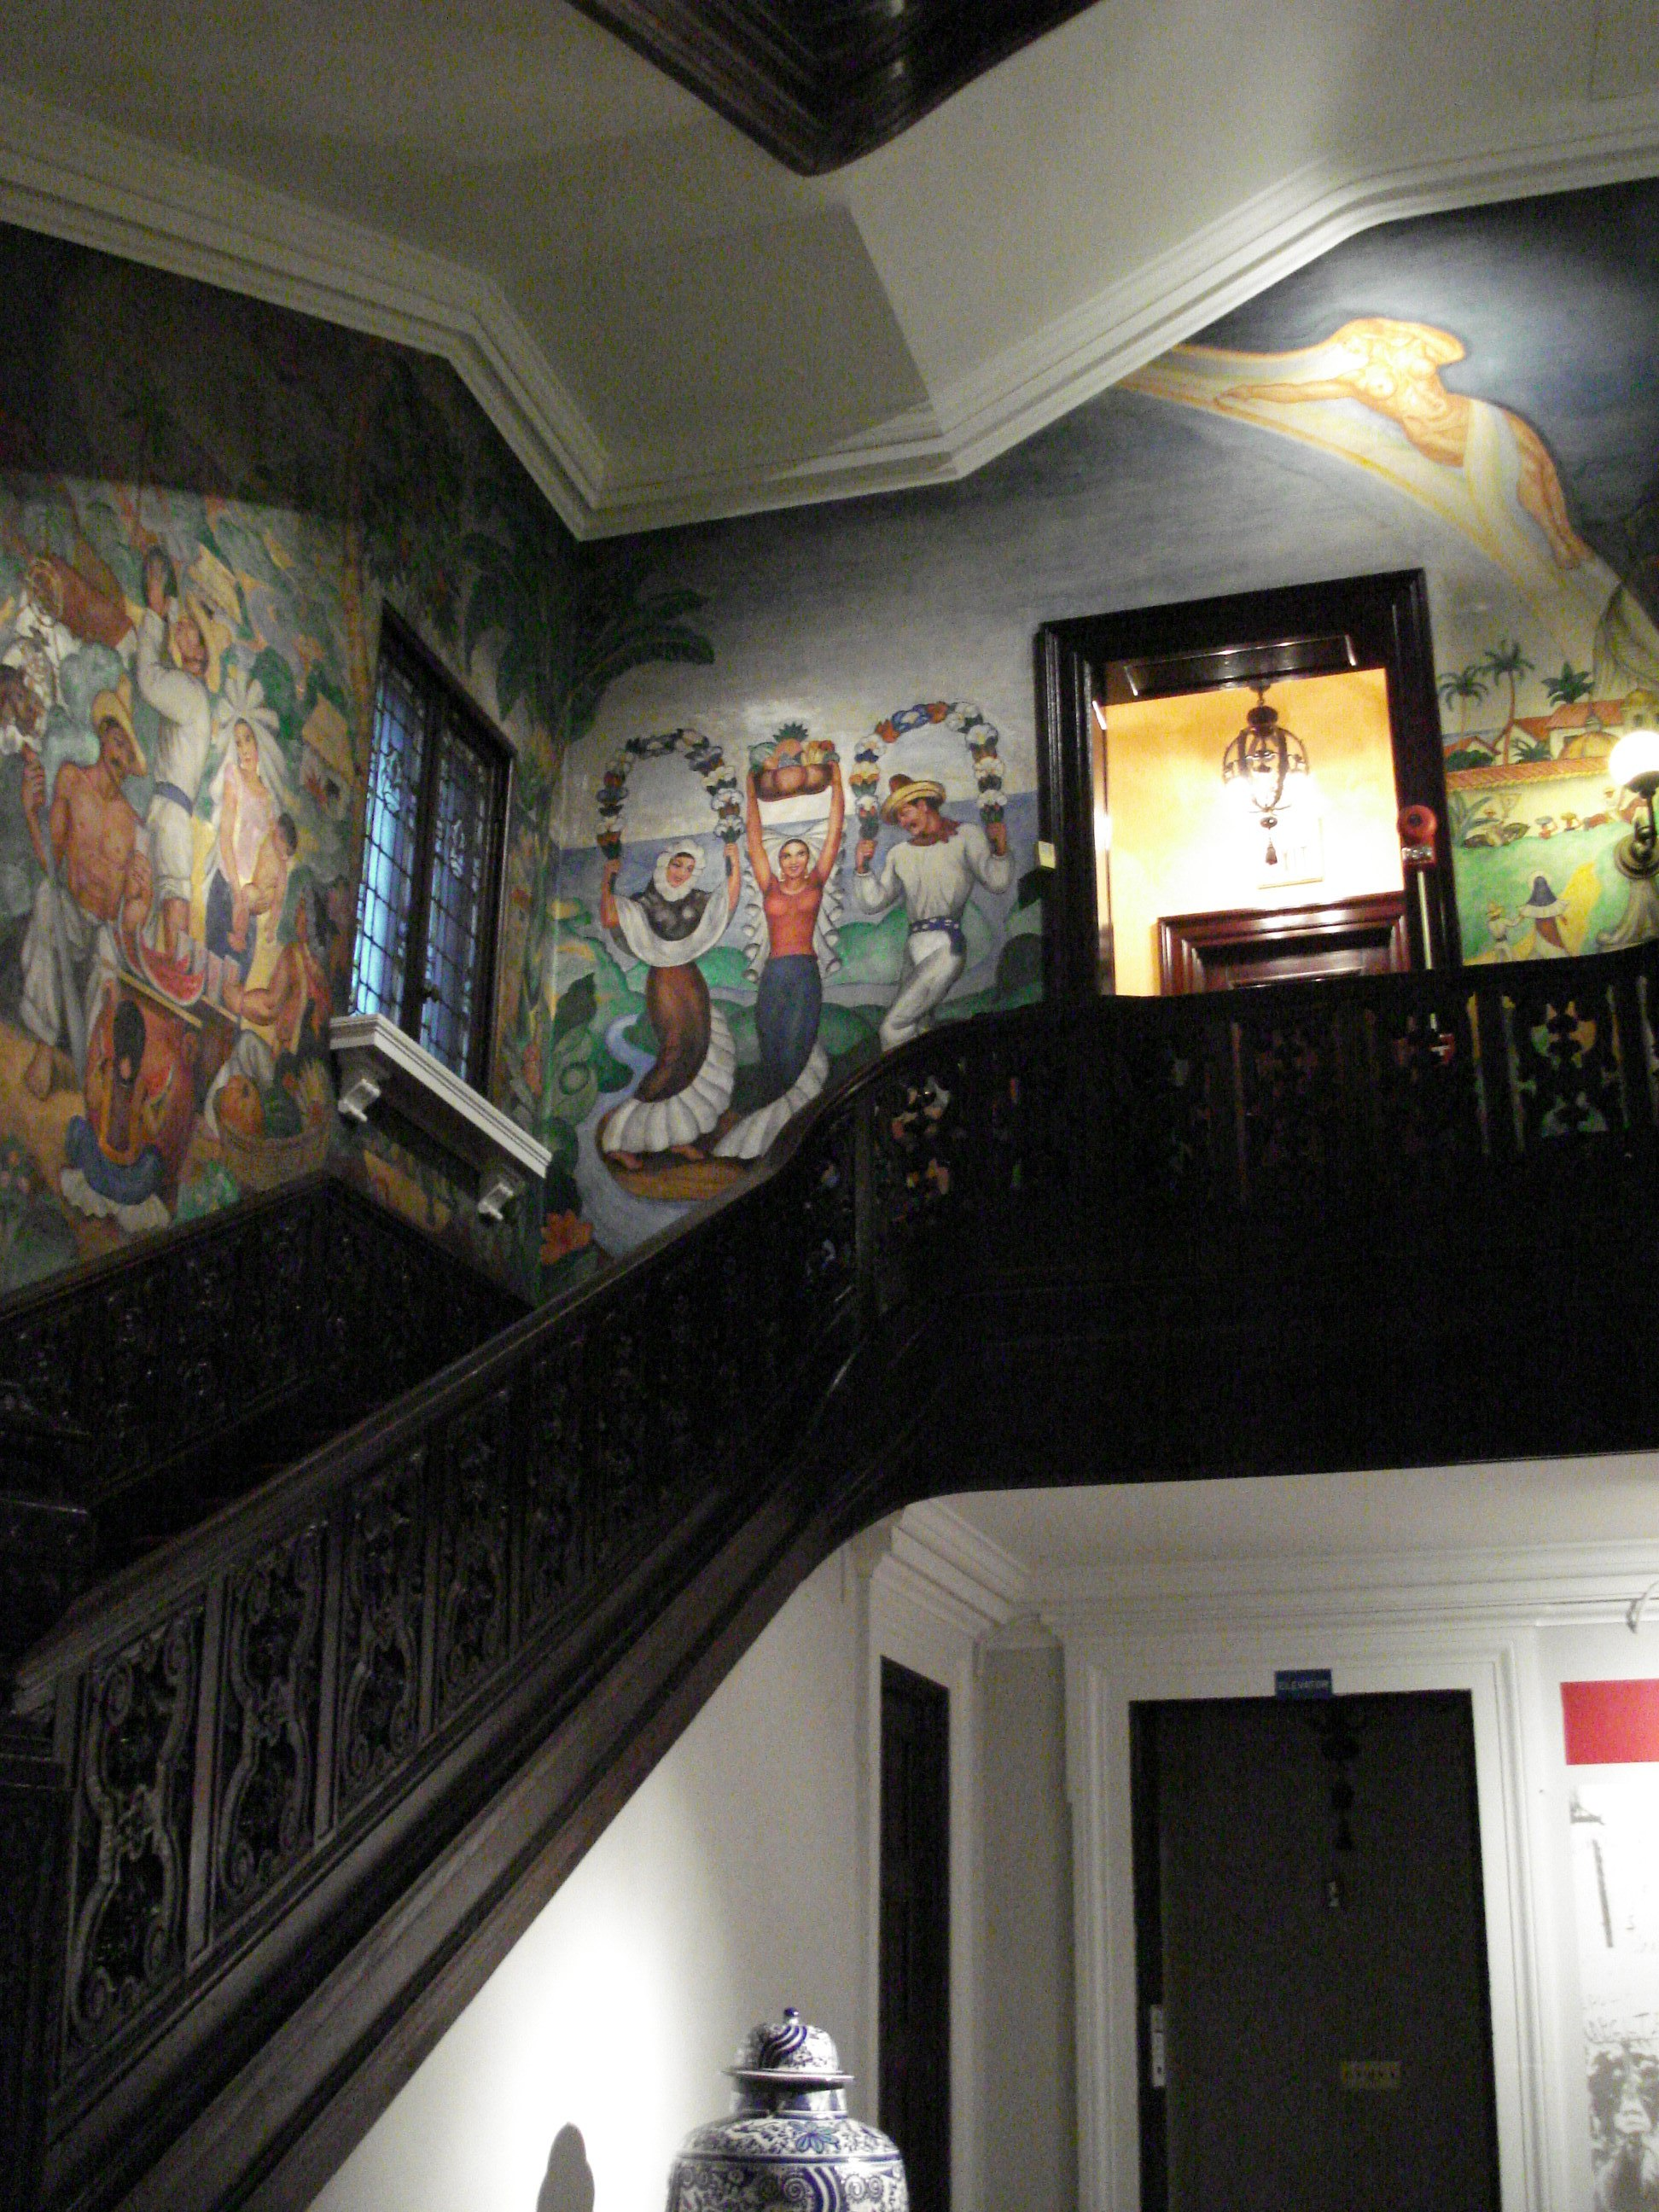 Amazing murals all along the stairwell